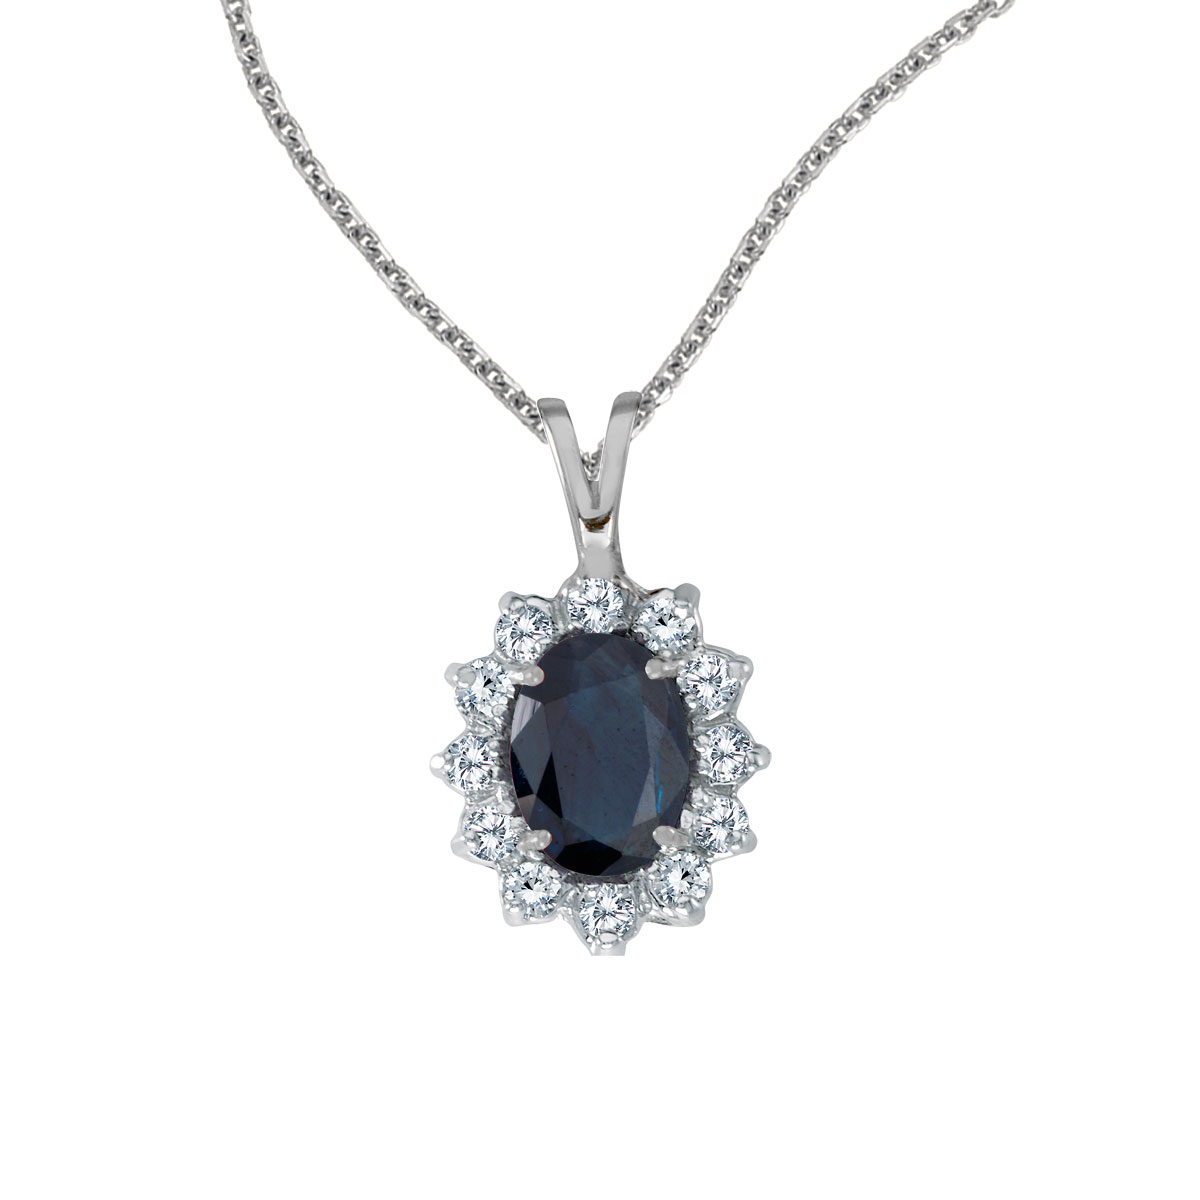 8x6 mm sapphire surrounded by .30 carats of shimmering diamonds set in 14k white gold. Perfect fo...